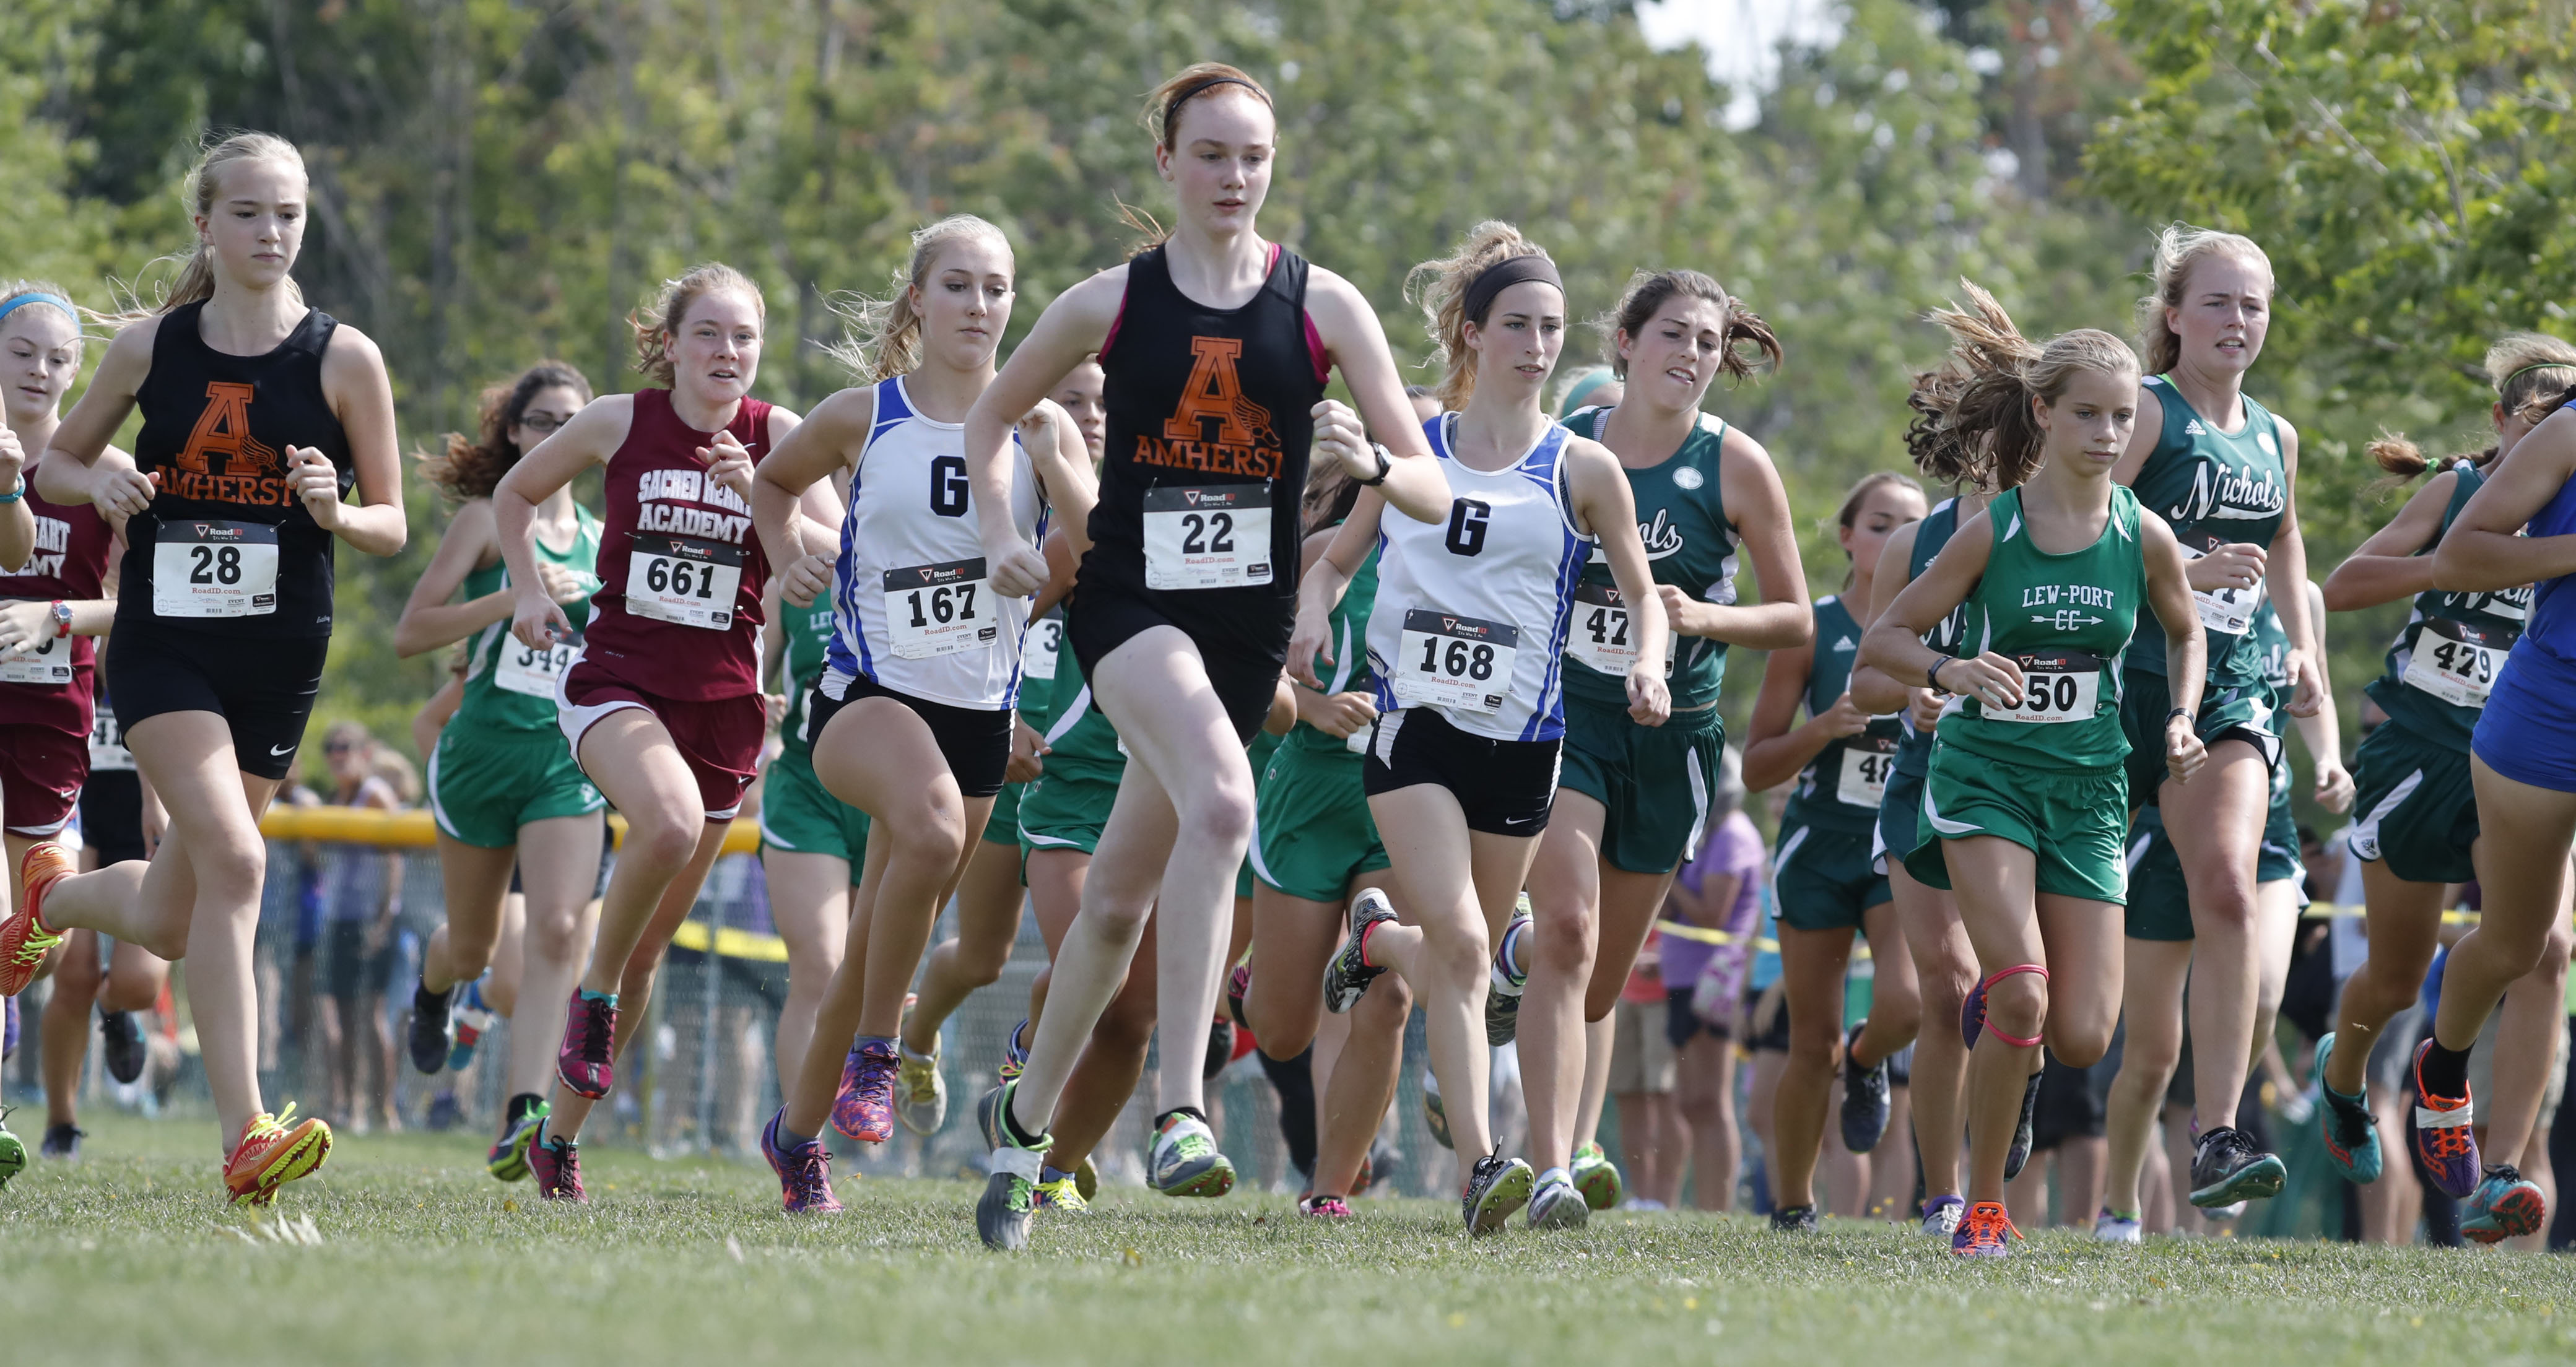 Runners compete in the girls small schools cross country meet  at Sunshine Park in West Seneca Sept. 10. (Harry Scull Jr./Buffalo News)